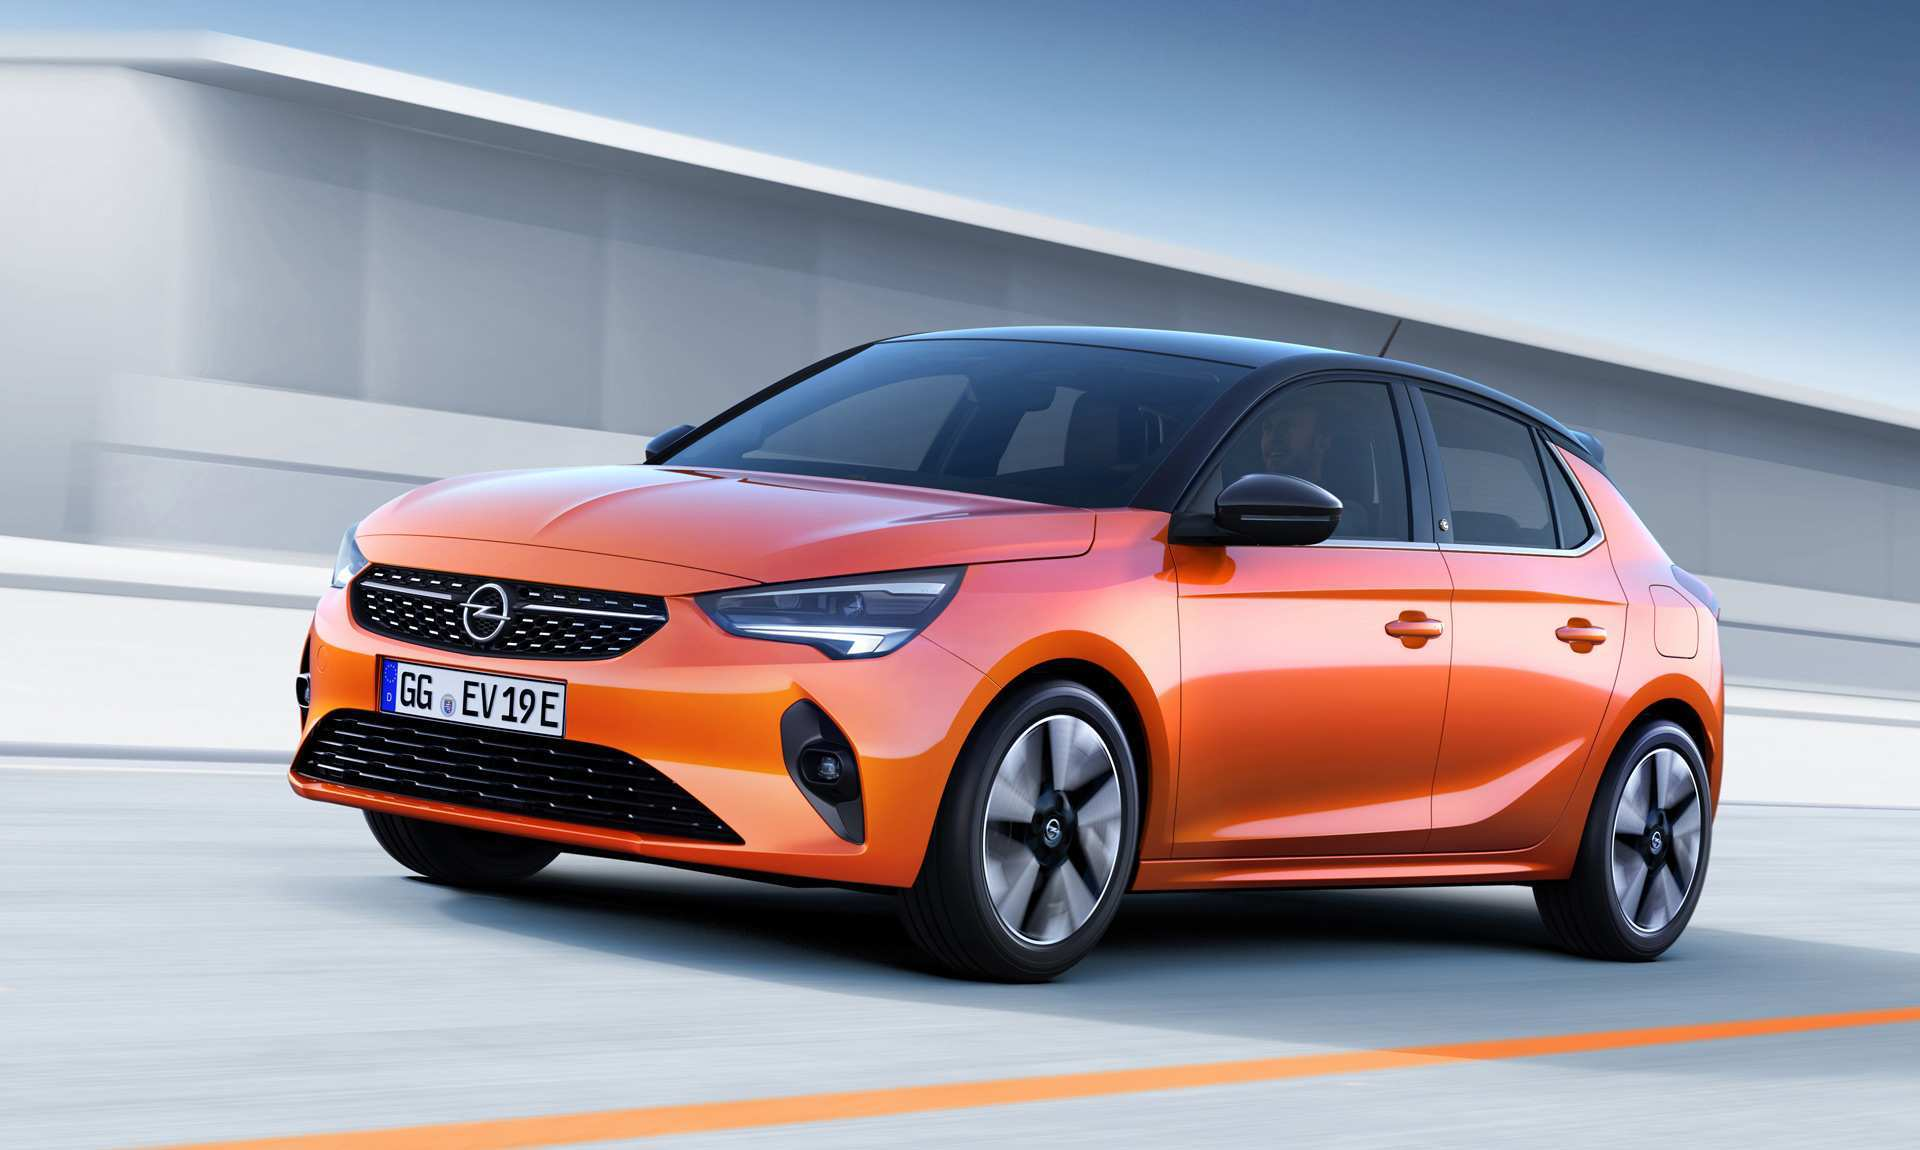 76 Best Review Opel Gsi 2020 Model with Opel Gsi 2020